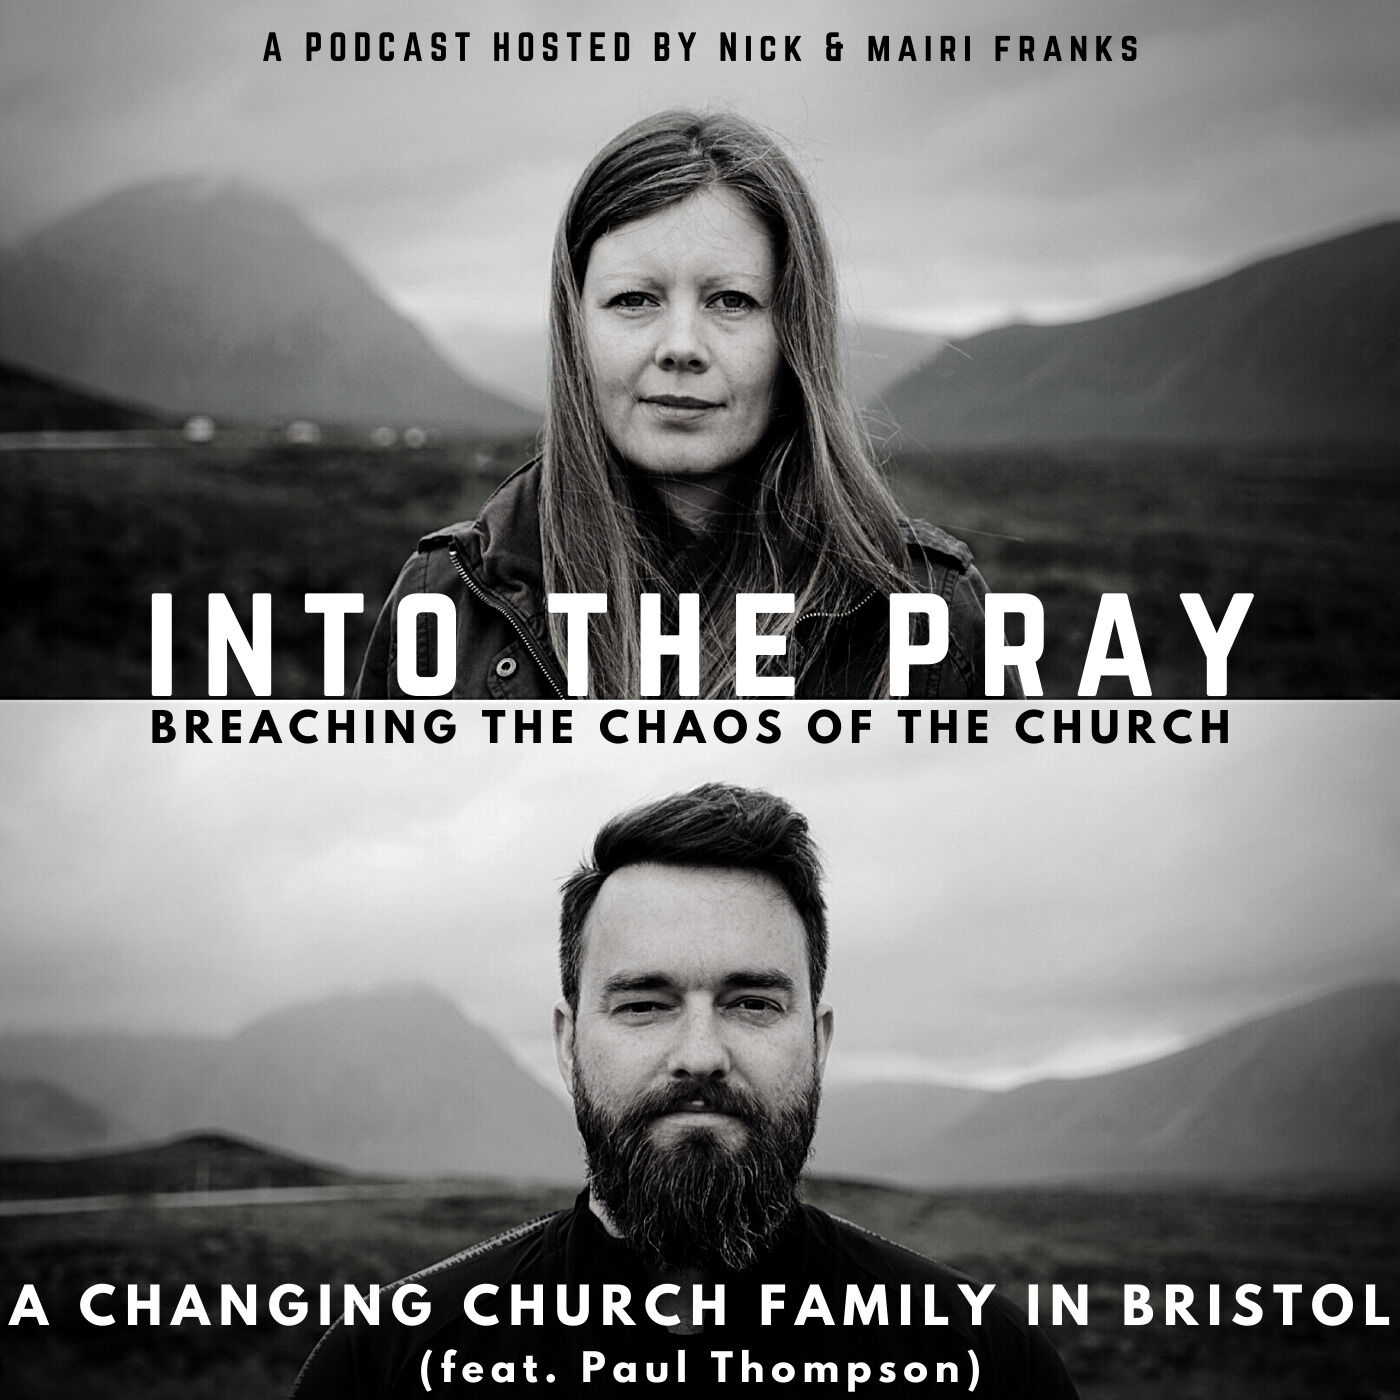 A Changing Church Family in Bristol (feat. Paul Thompson)